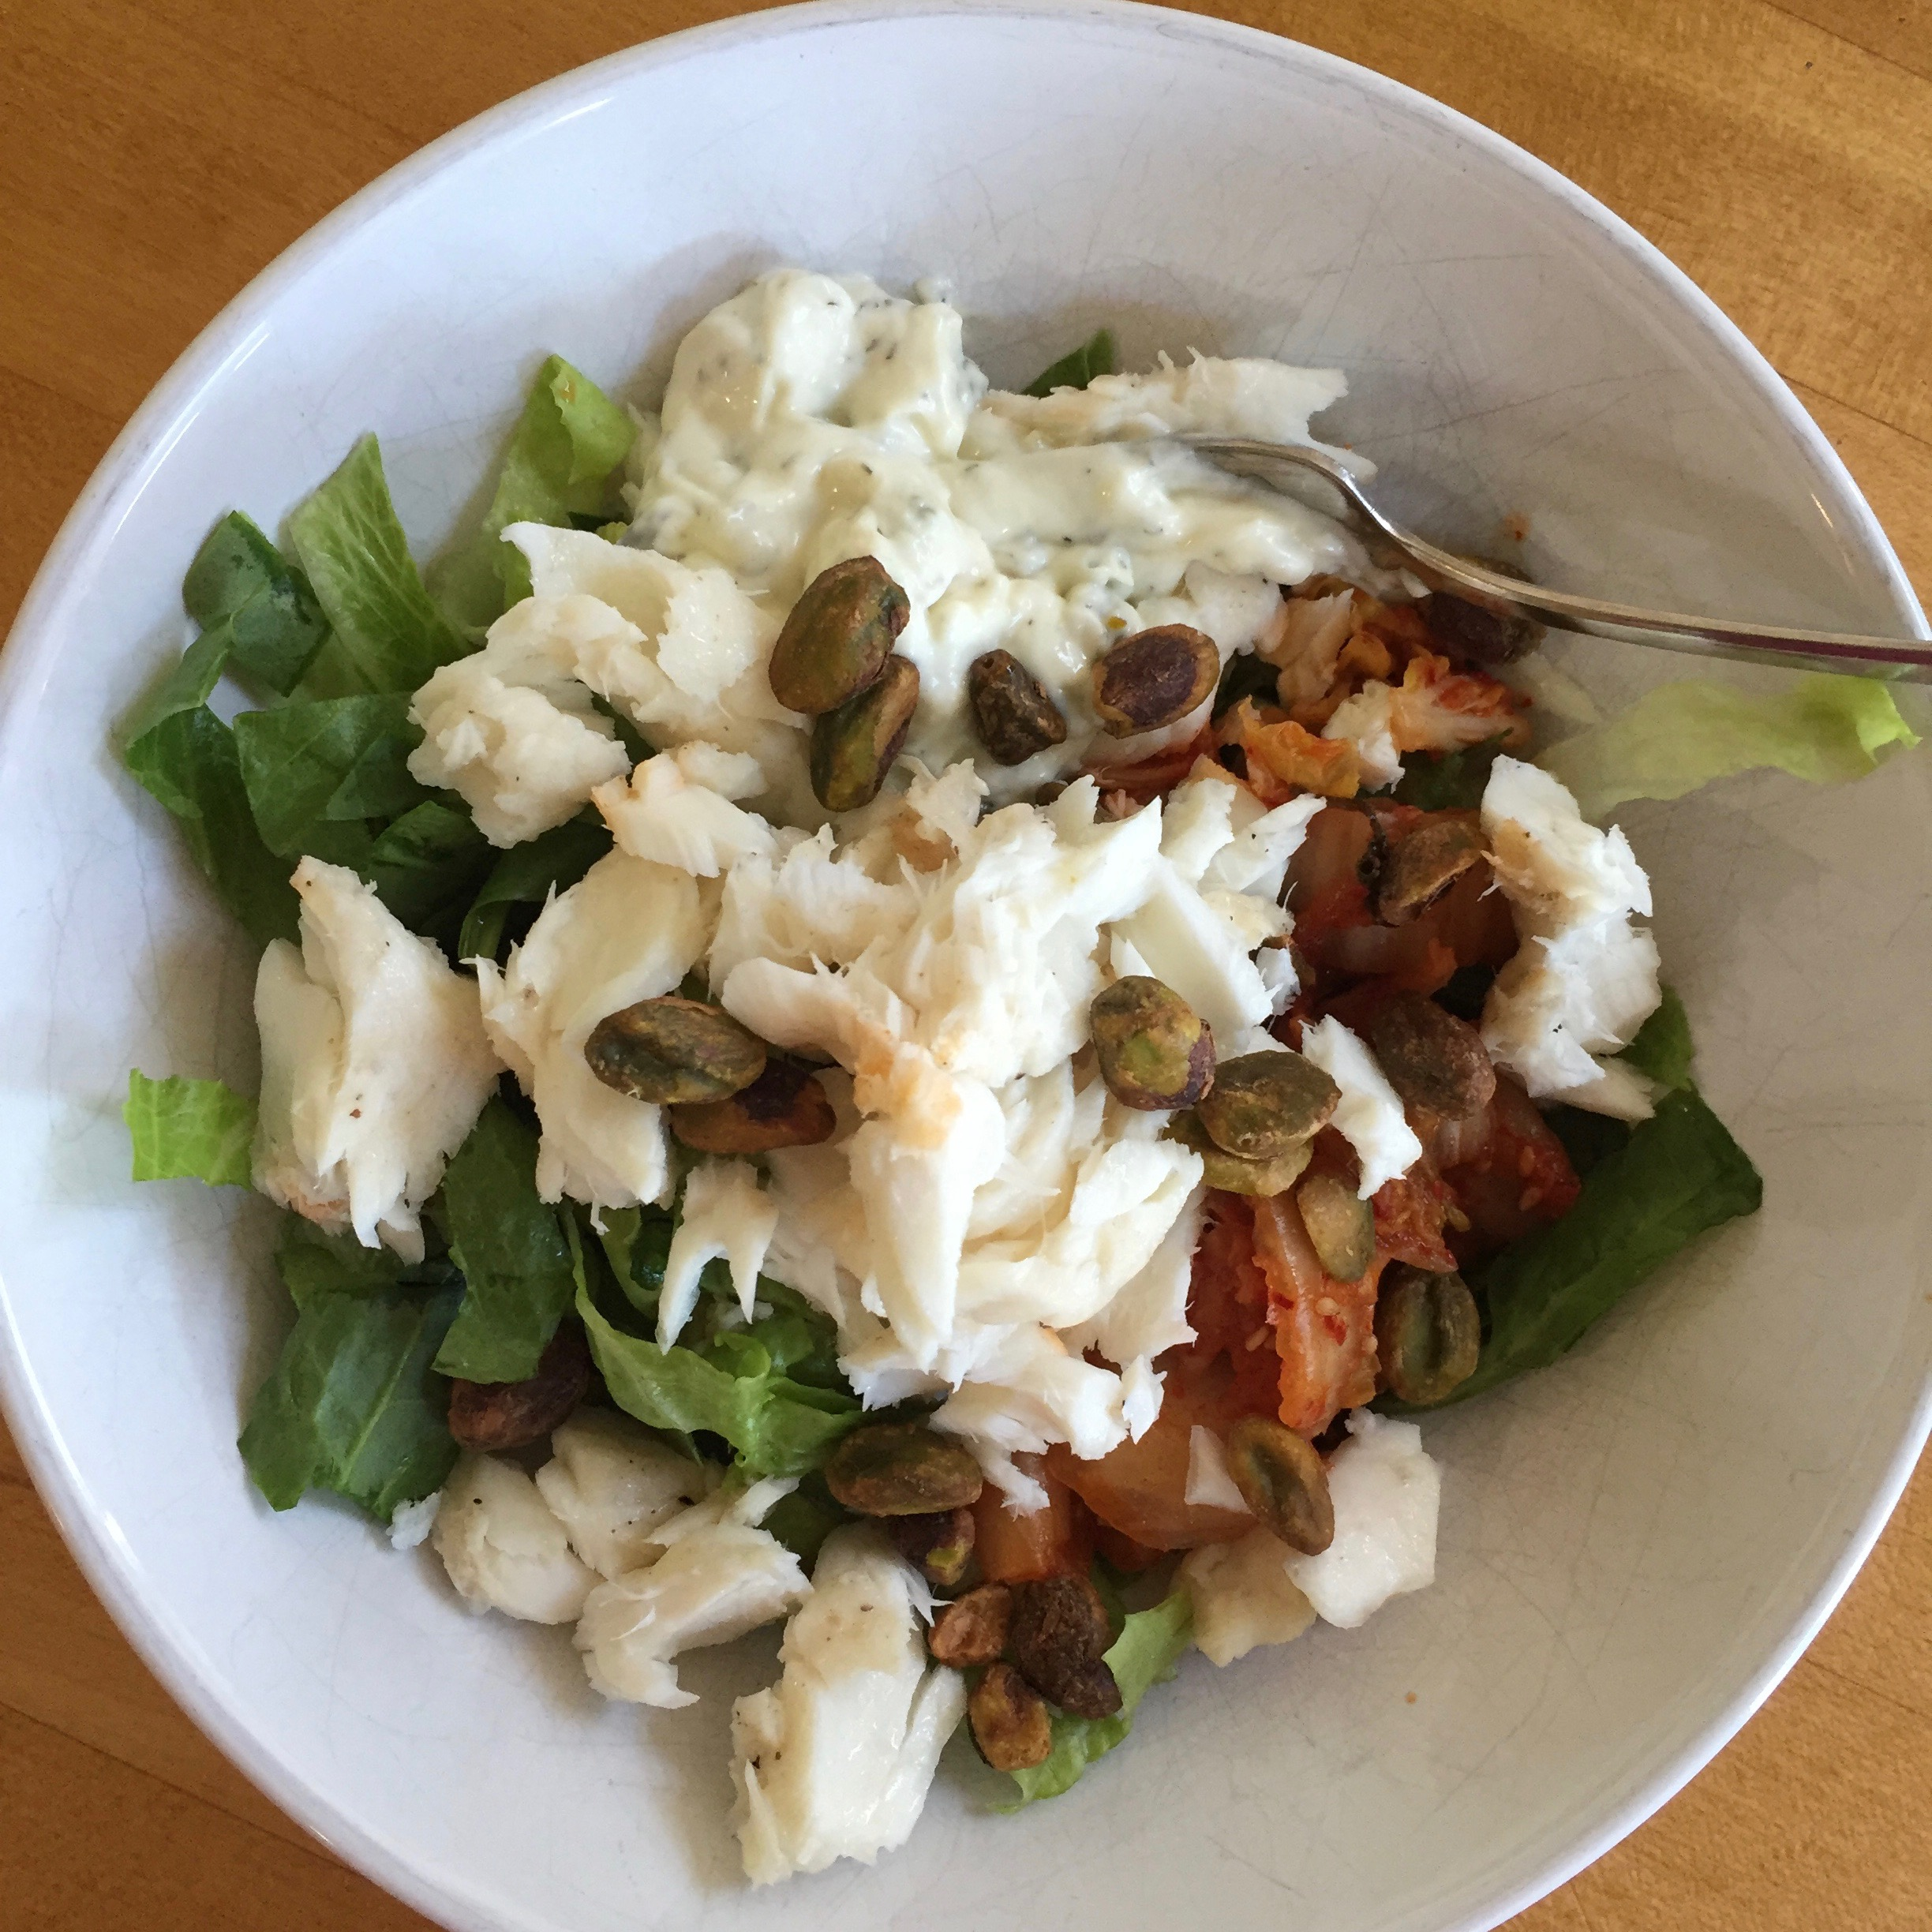 Left over tilapia on a bed of romaine and spinach with a little Kimchi (yes, I'm learning to like it!), pistachio nuts and homemade tartar sauce/dressing. Serious YUM.